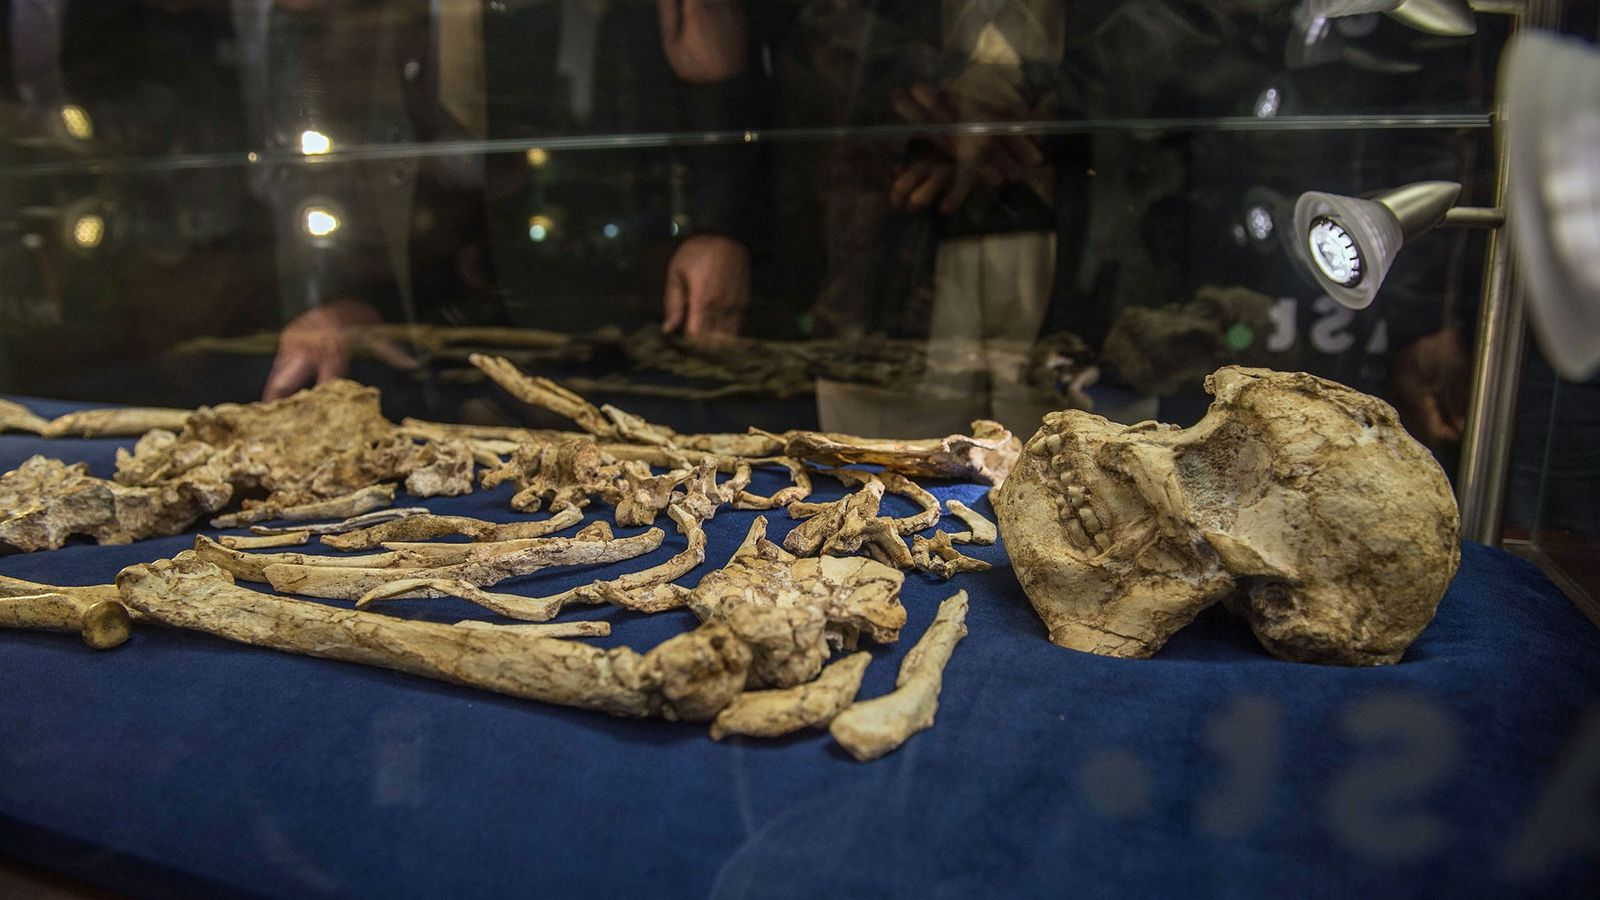 The skull of 'Australopithecus prometheus', known as 'Little Foot', is on display now.